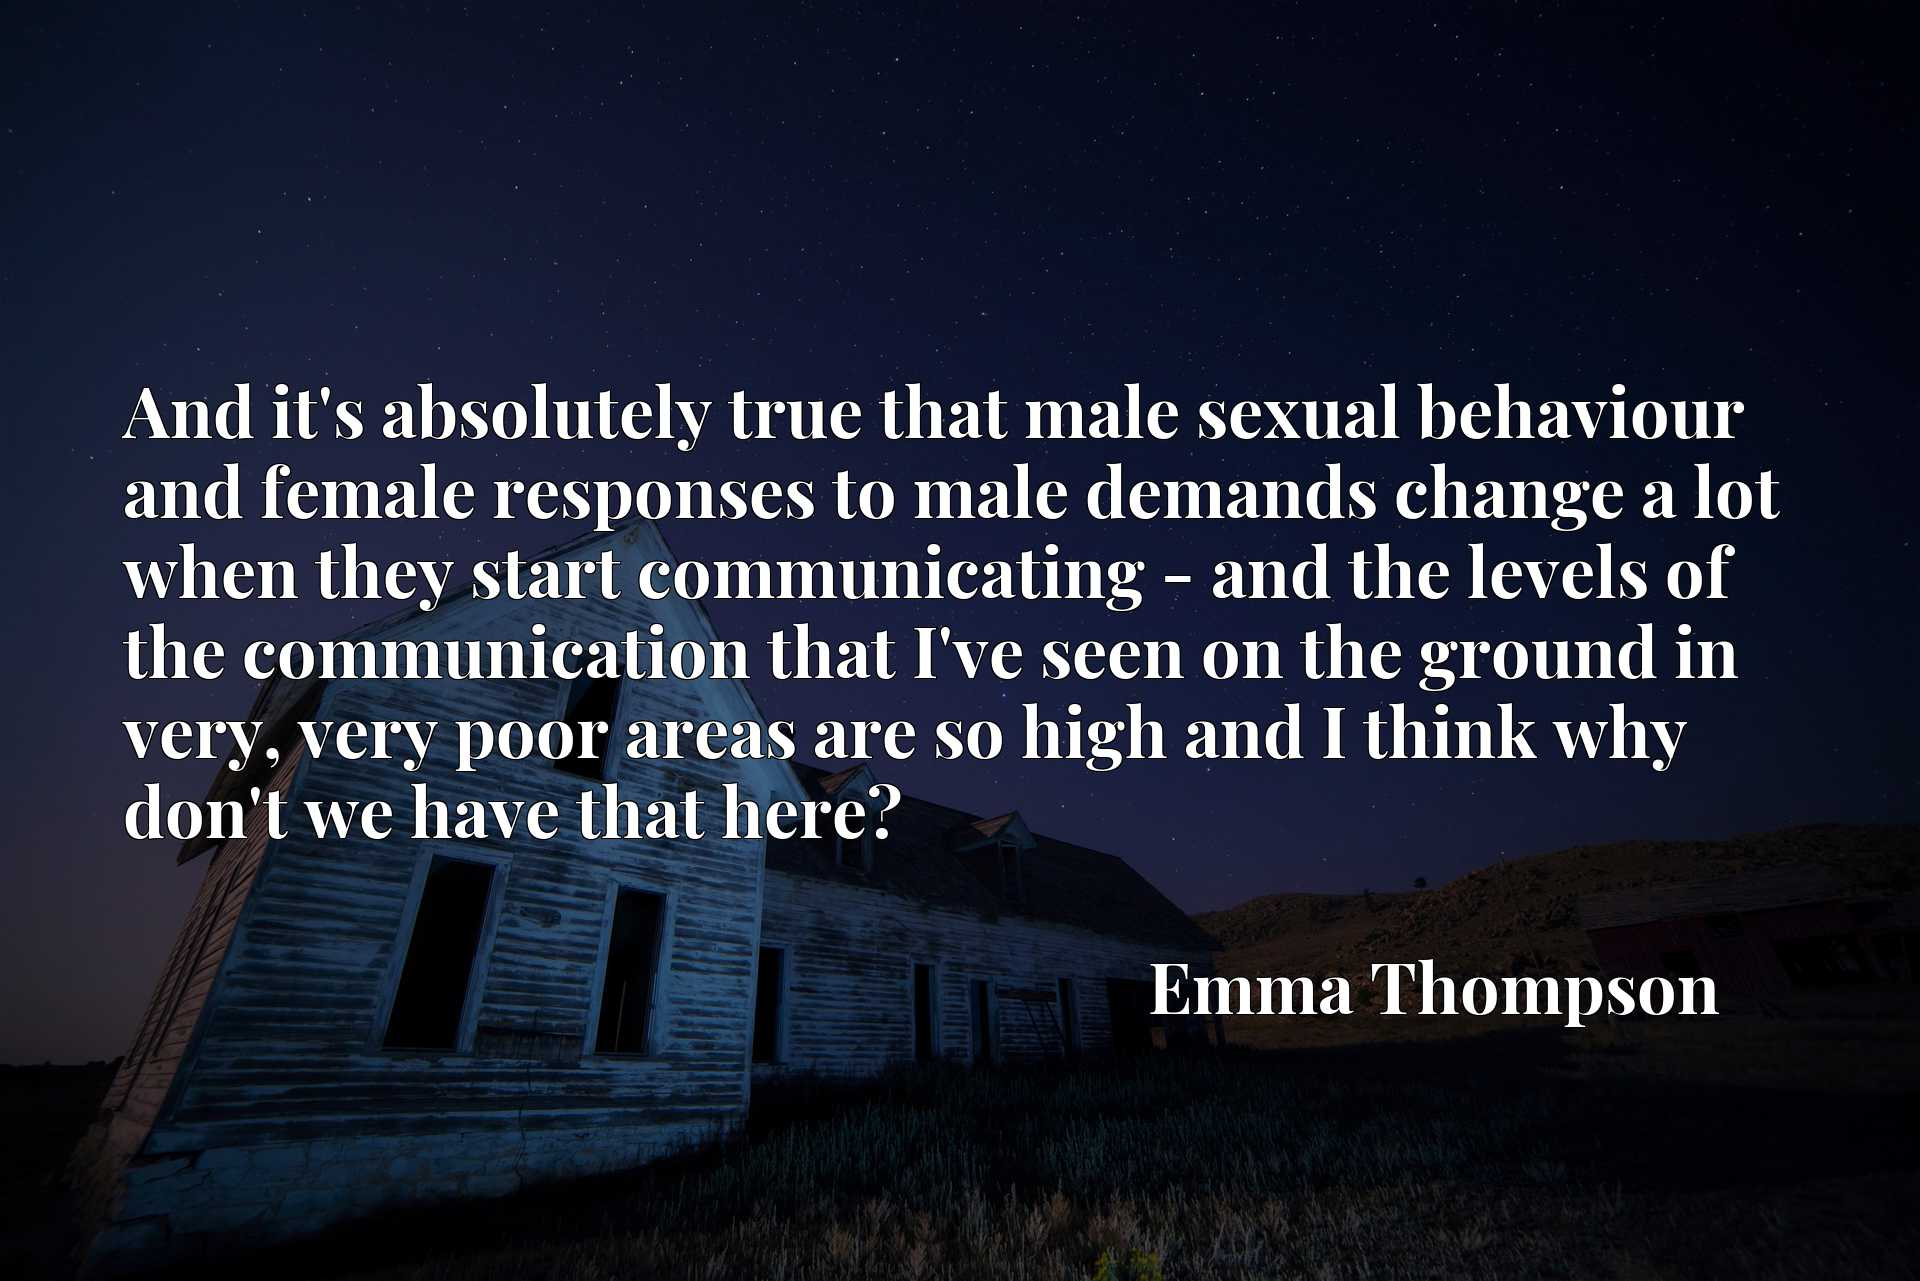 And it's absolutely true that male sexual behaviour and female responses to male demands change a lot when they start communicating - and the levels of the communication that I've seen on the ground in very, very poor areas are so high and I think why don't we have that here?